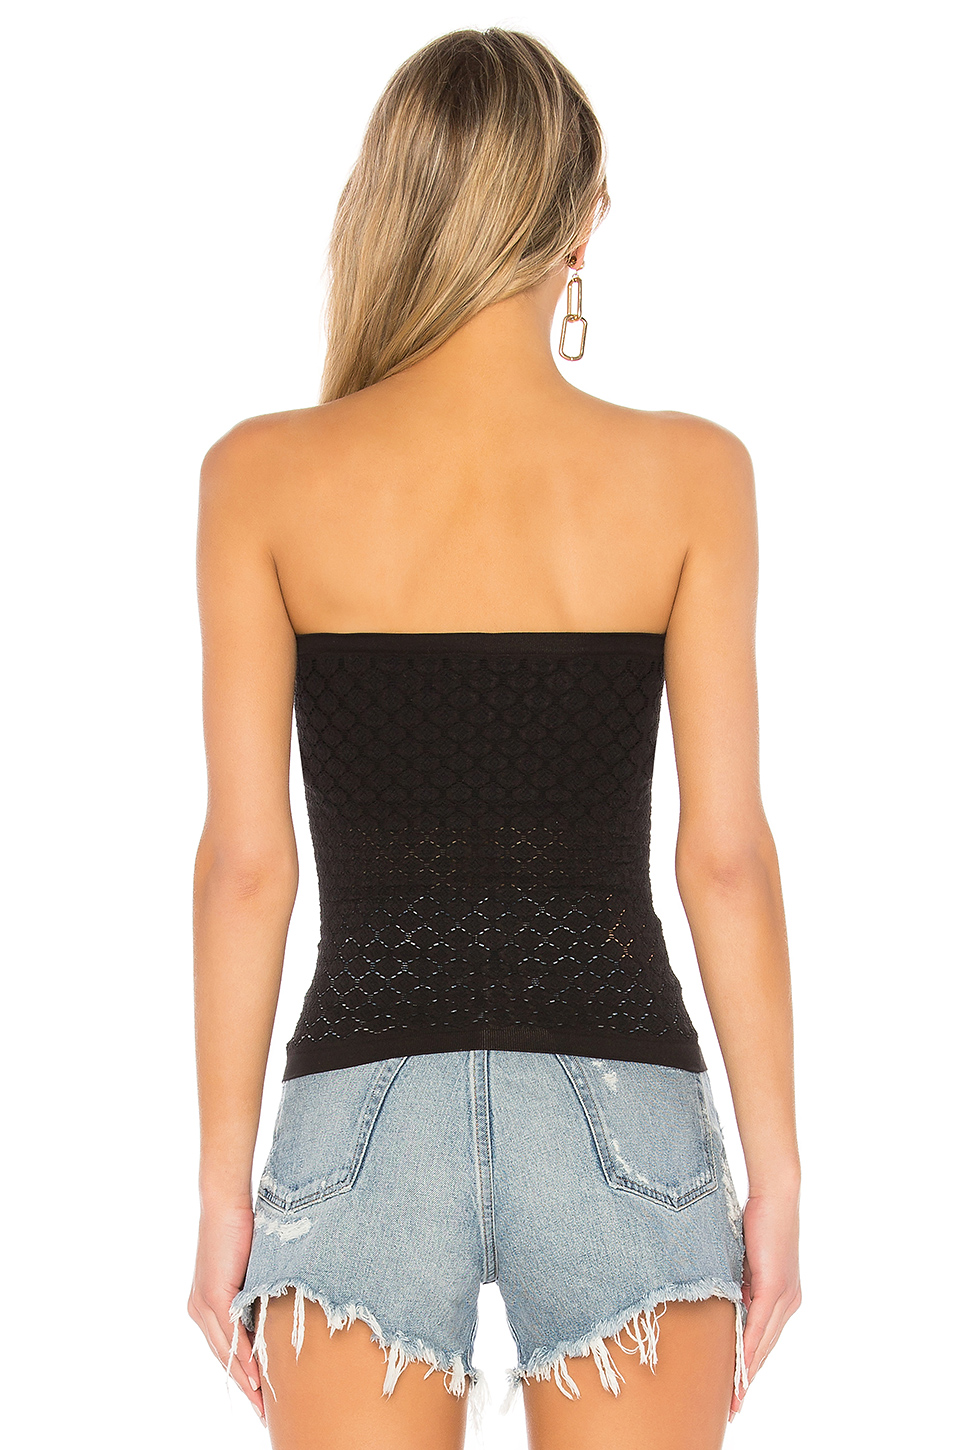 9107374a86e6 Buy Original Free People Diamond Textured Tube Top at Indonesia ...